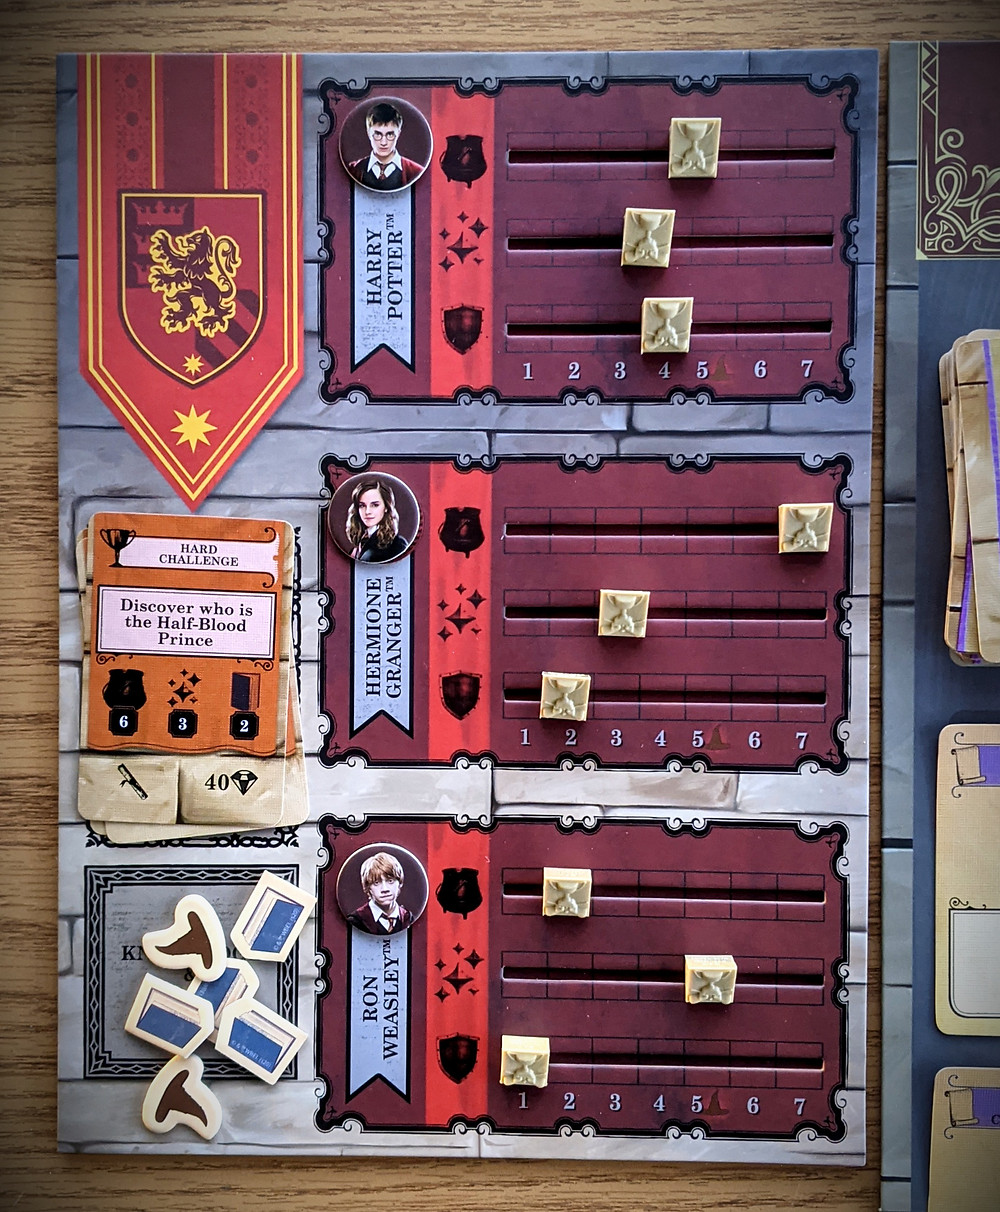 Harry Potter House Cup Championship Gryffindor Player Board